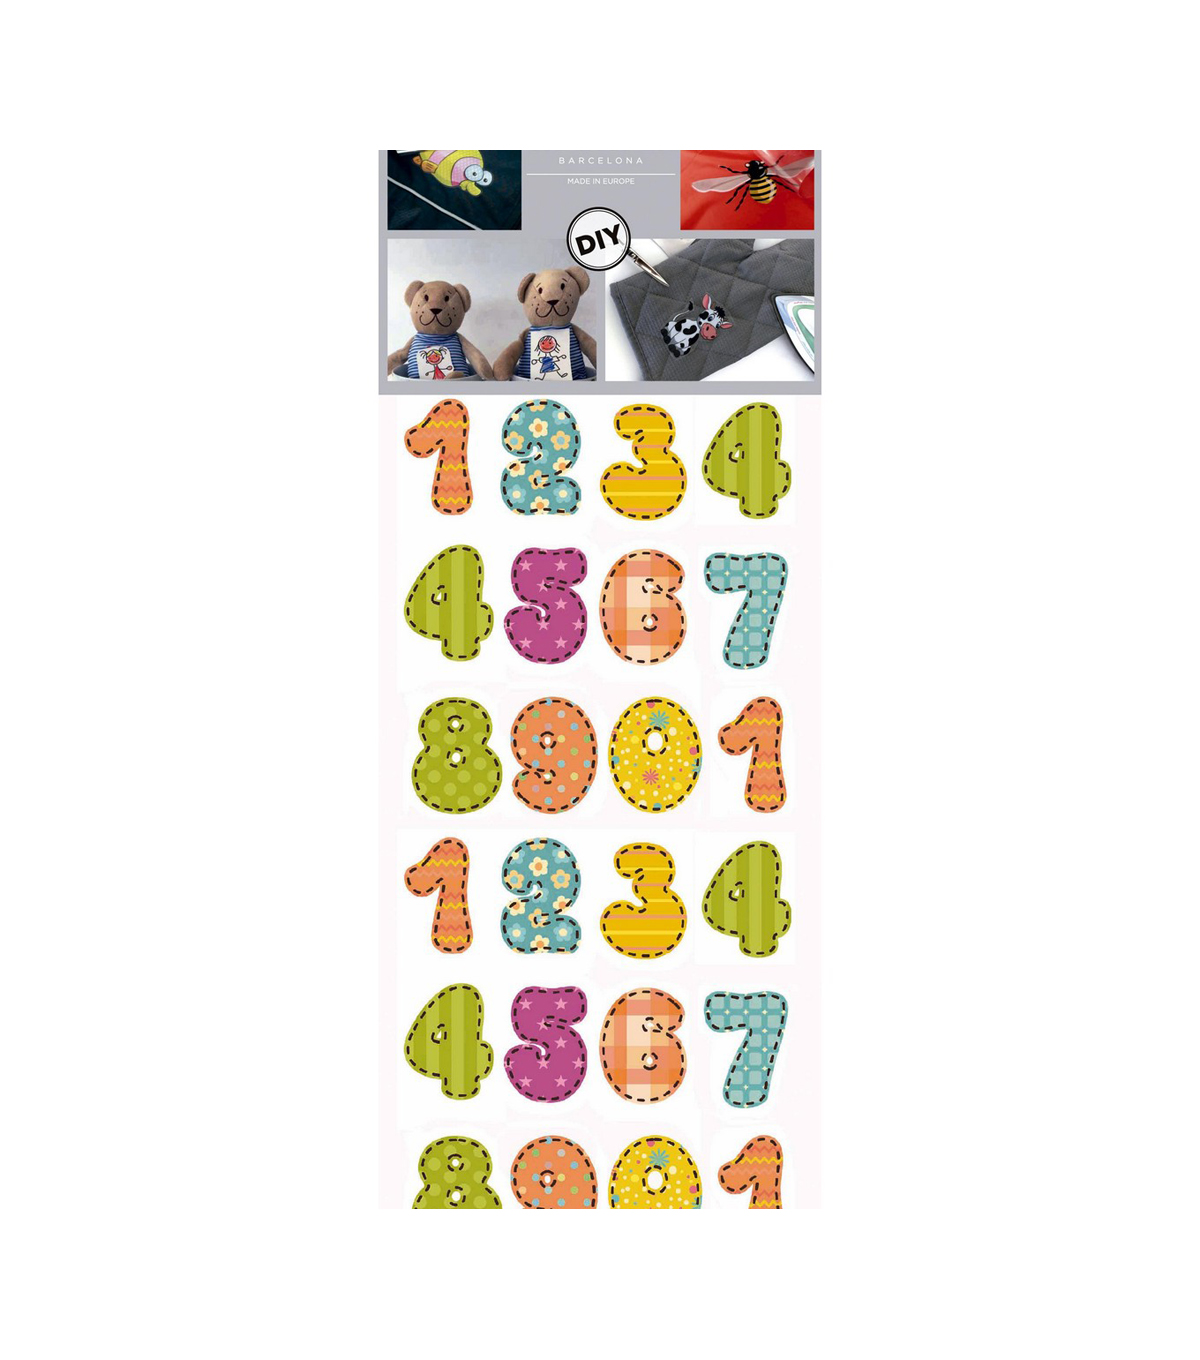 Decorprint Textil Transfer 3.75\u0027\u0027x7.75\u0027\u0027 Fabric Iron-on Sheet-Numbers